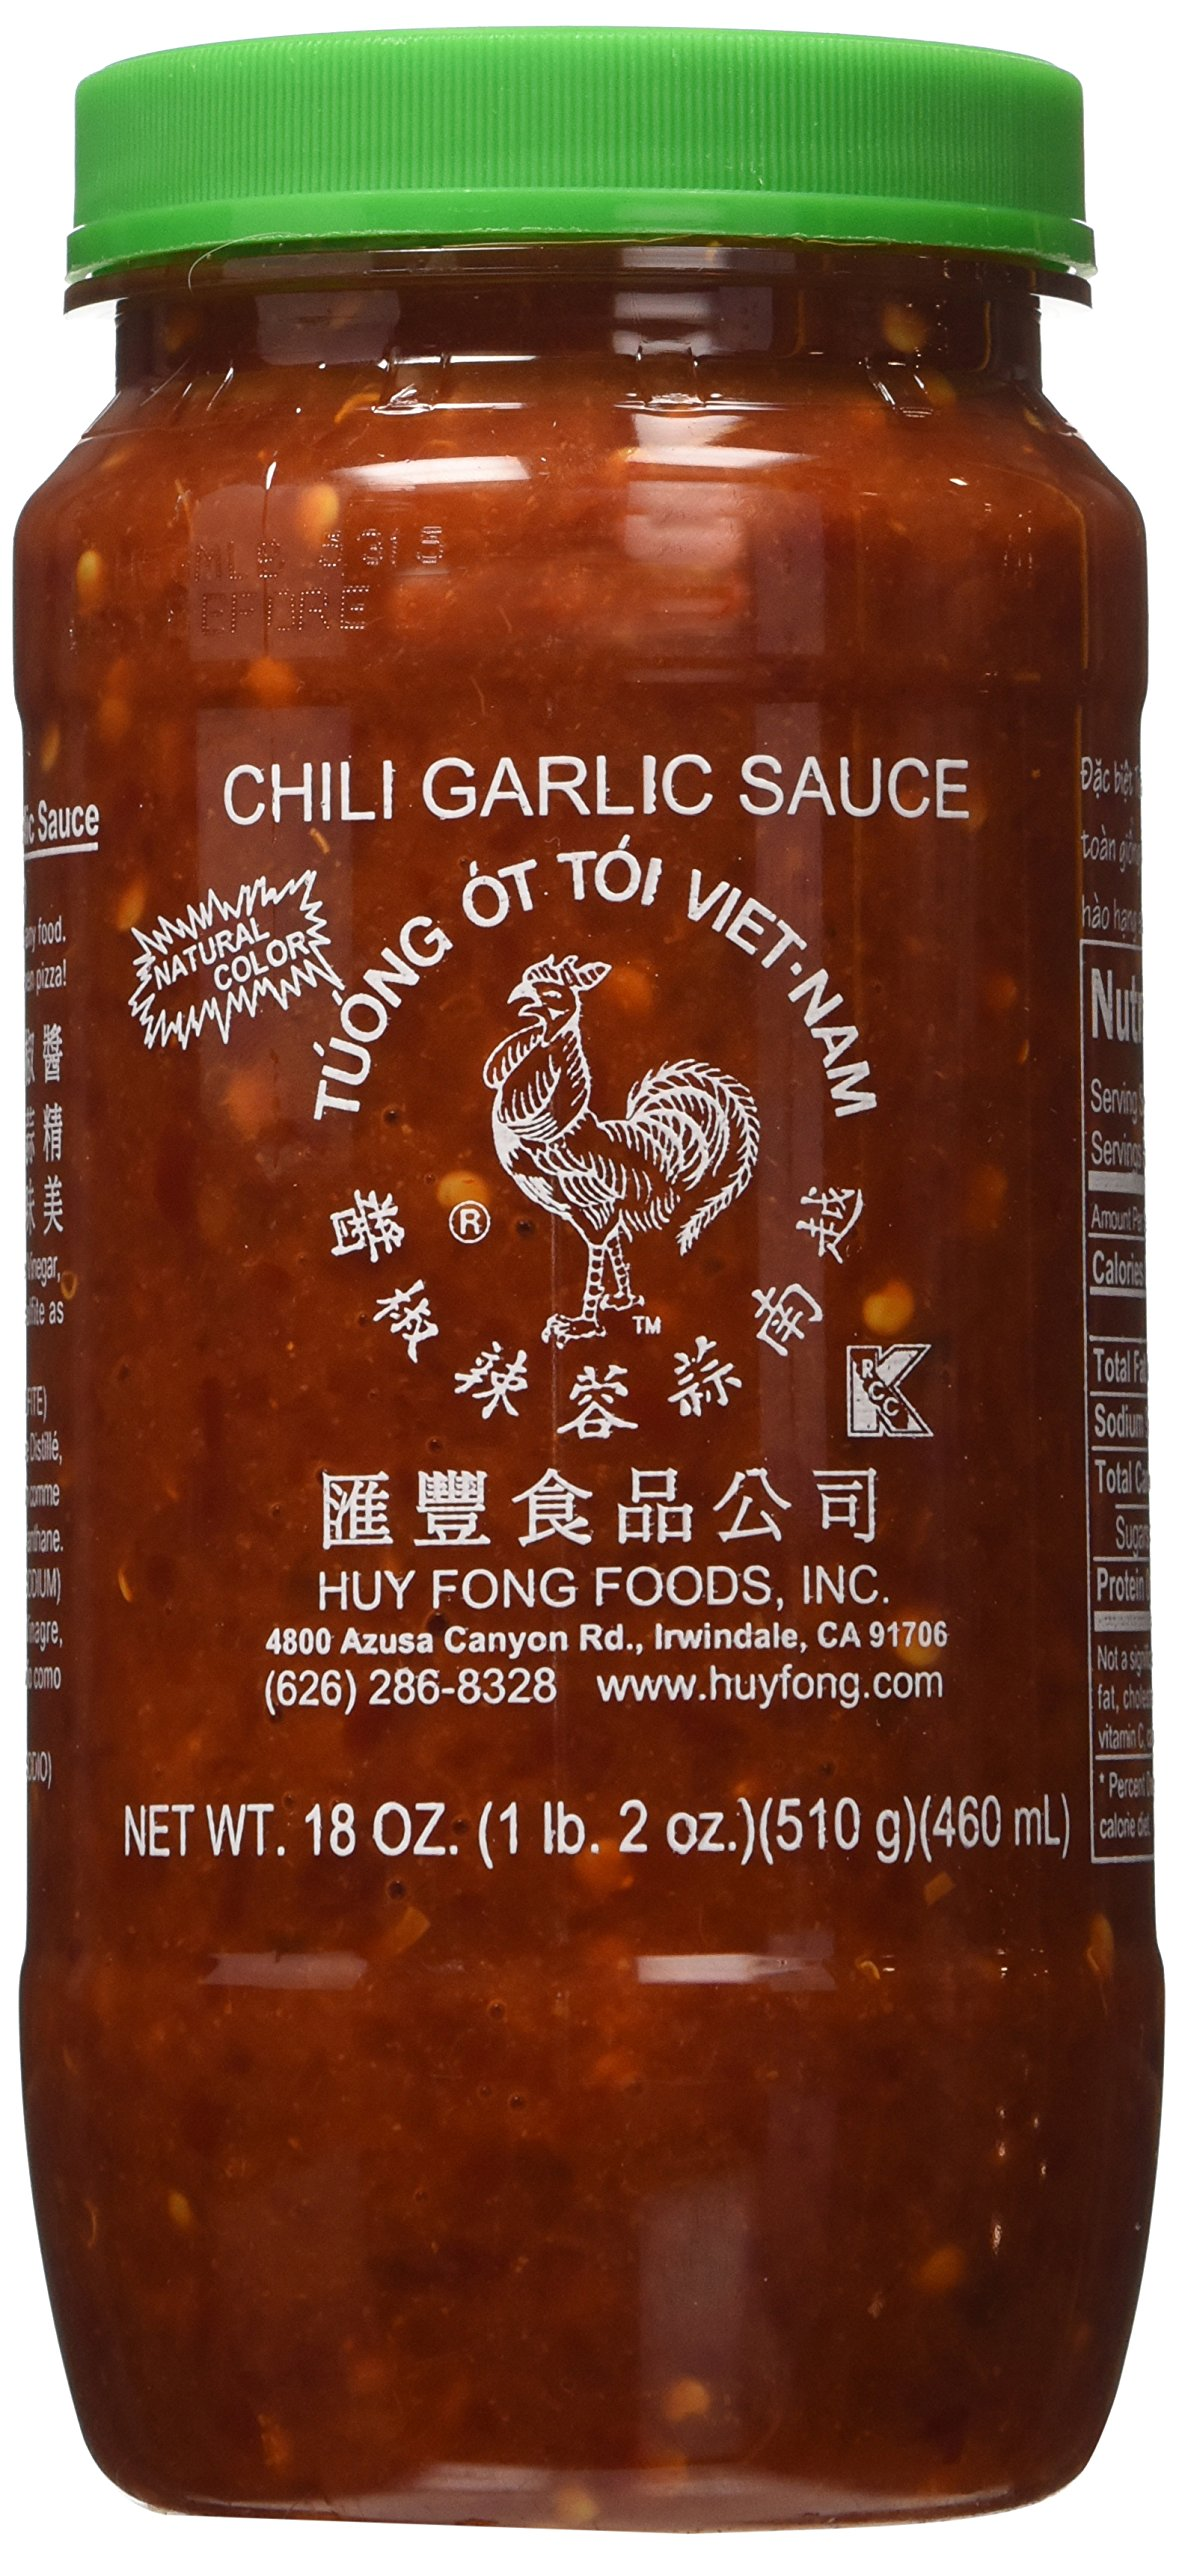 Huy Fong Sauce Chili Garlic,18 oz